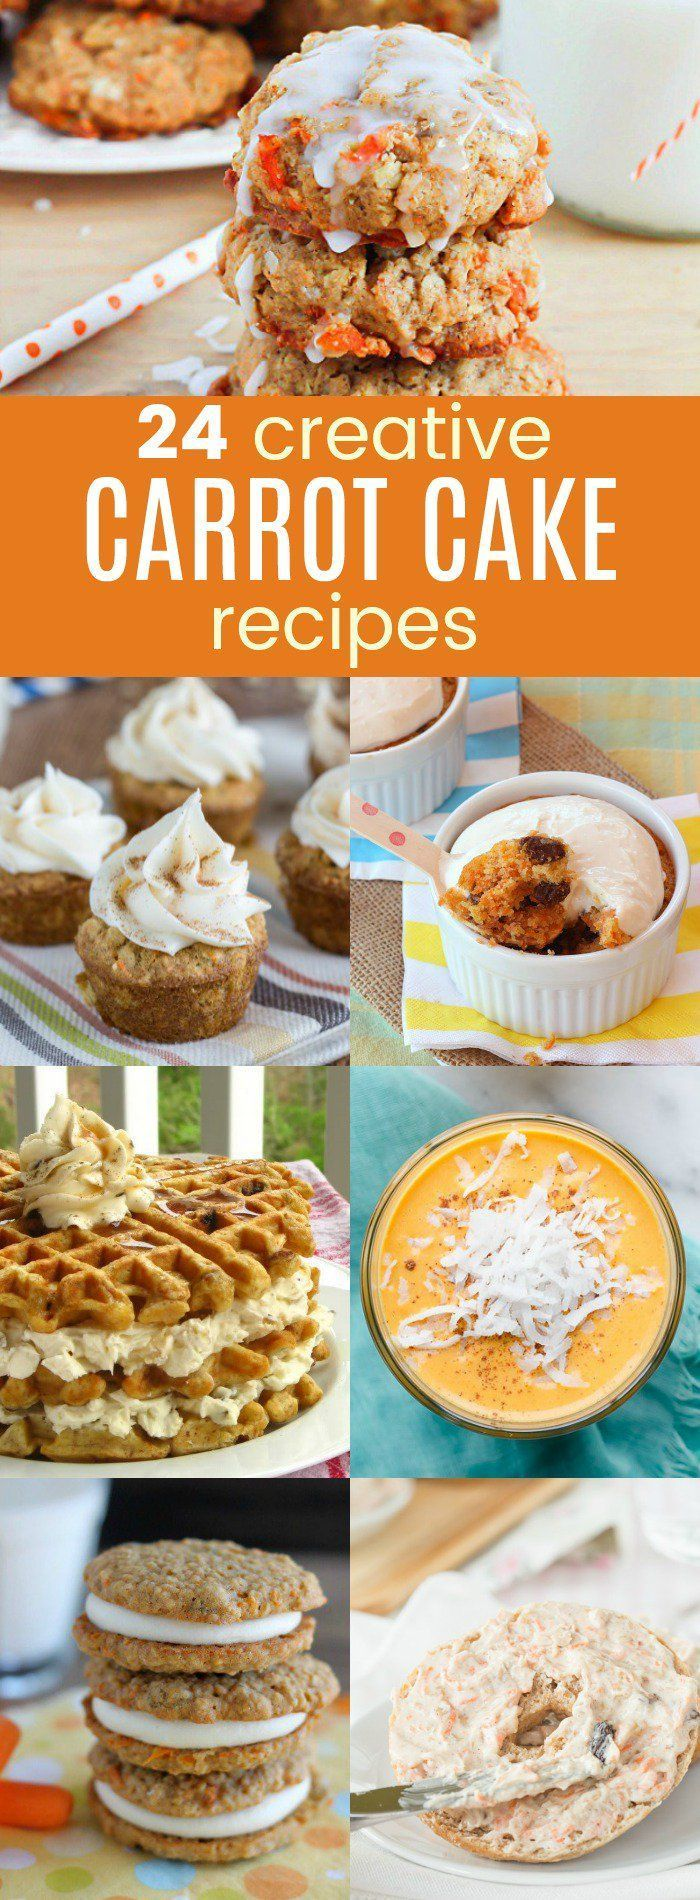 24 Creative Carrot Cake Recipes - enjoy this favorite spring dessert in every form from indulgent sweet treats like cookies and cupcakes to healthy breakfast and snacks like smoothies and granola bars, plus everything in between. You'll even find the classic recipe for the best carrot cake ever! #carrotcake #easter #baking #breakfast #dessert #springrecipes #springdesserts